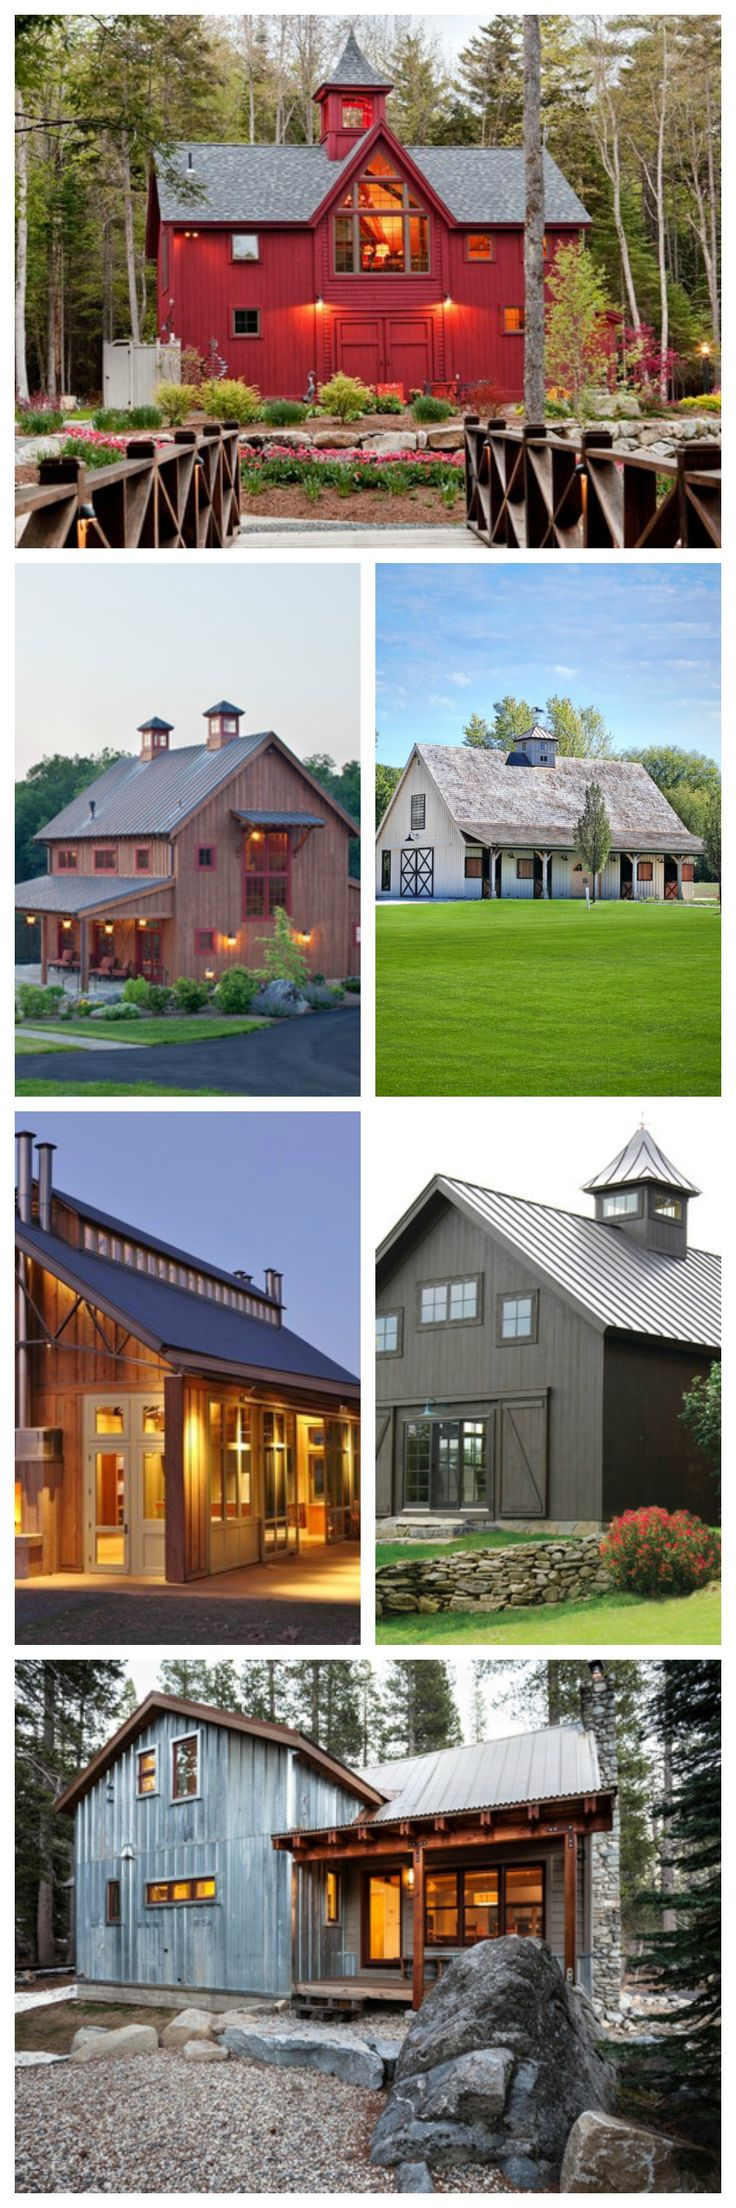 Pole Barn Home Ideas, Popular Pin.                                                                                                                                                                                 More